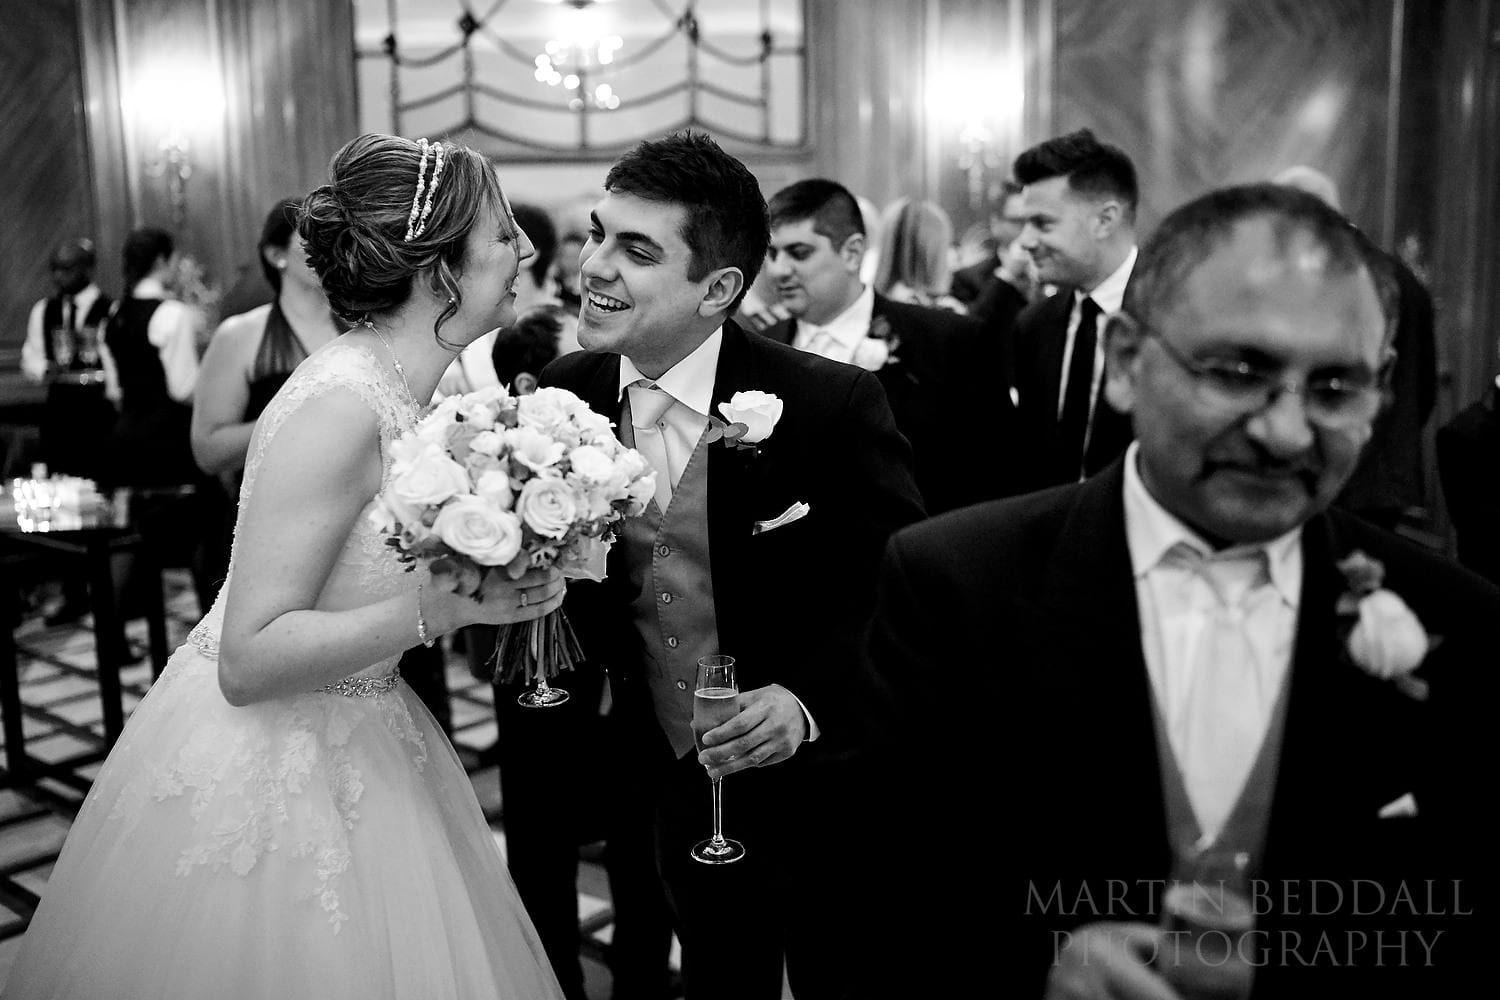 Bride greets groom's family